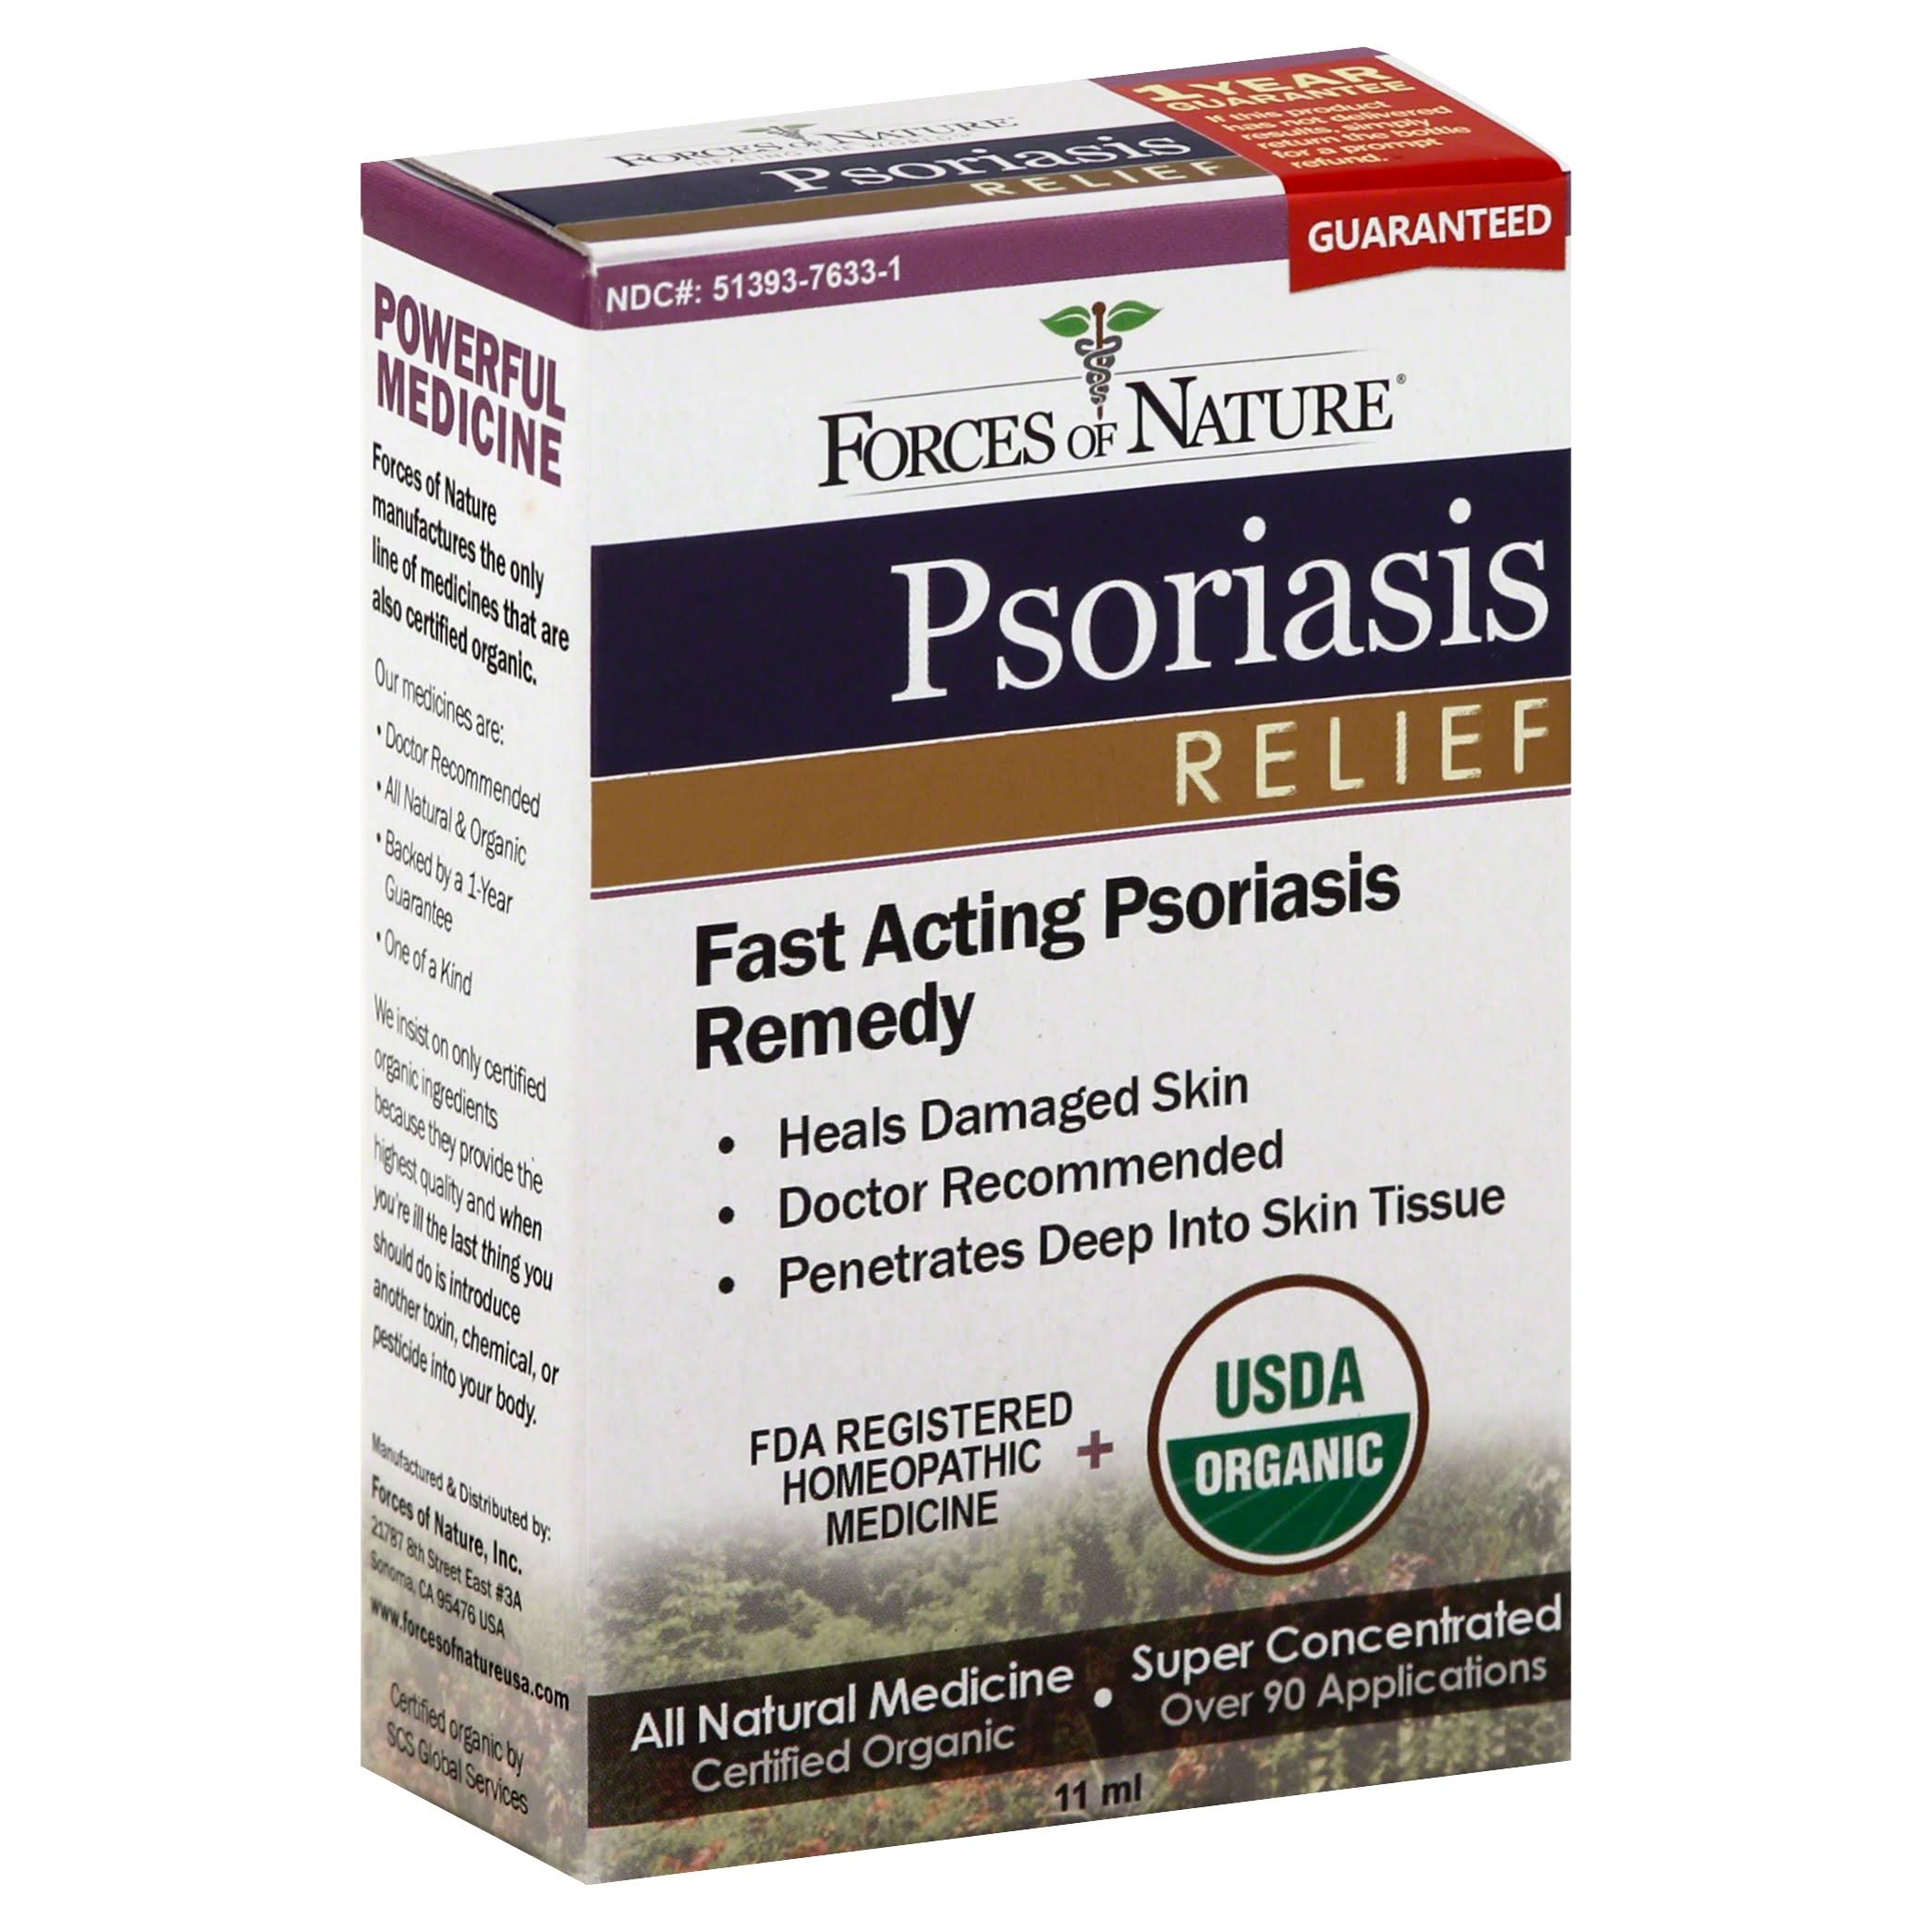 Forces of Nature Psoriasis Control - 11ml